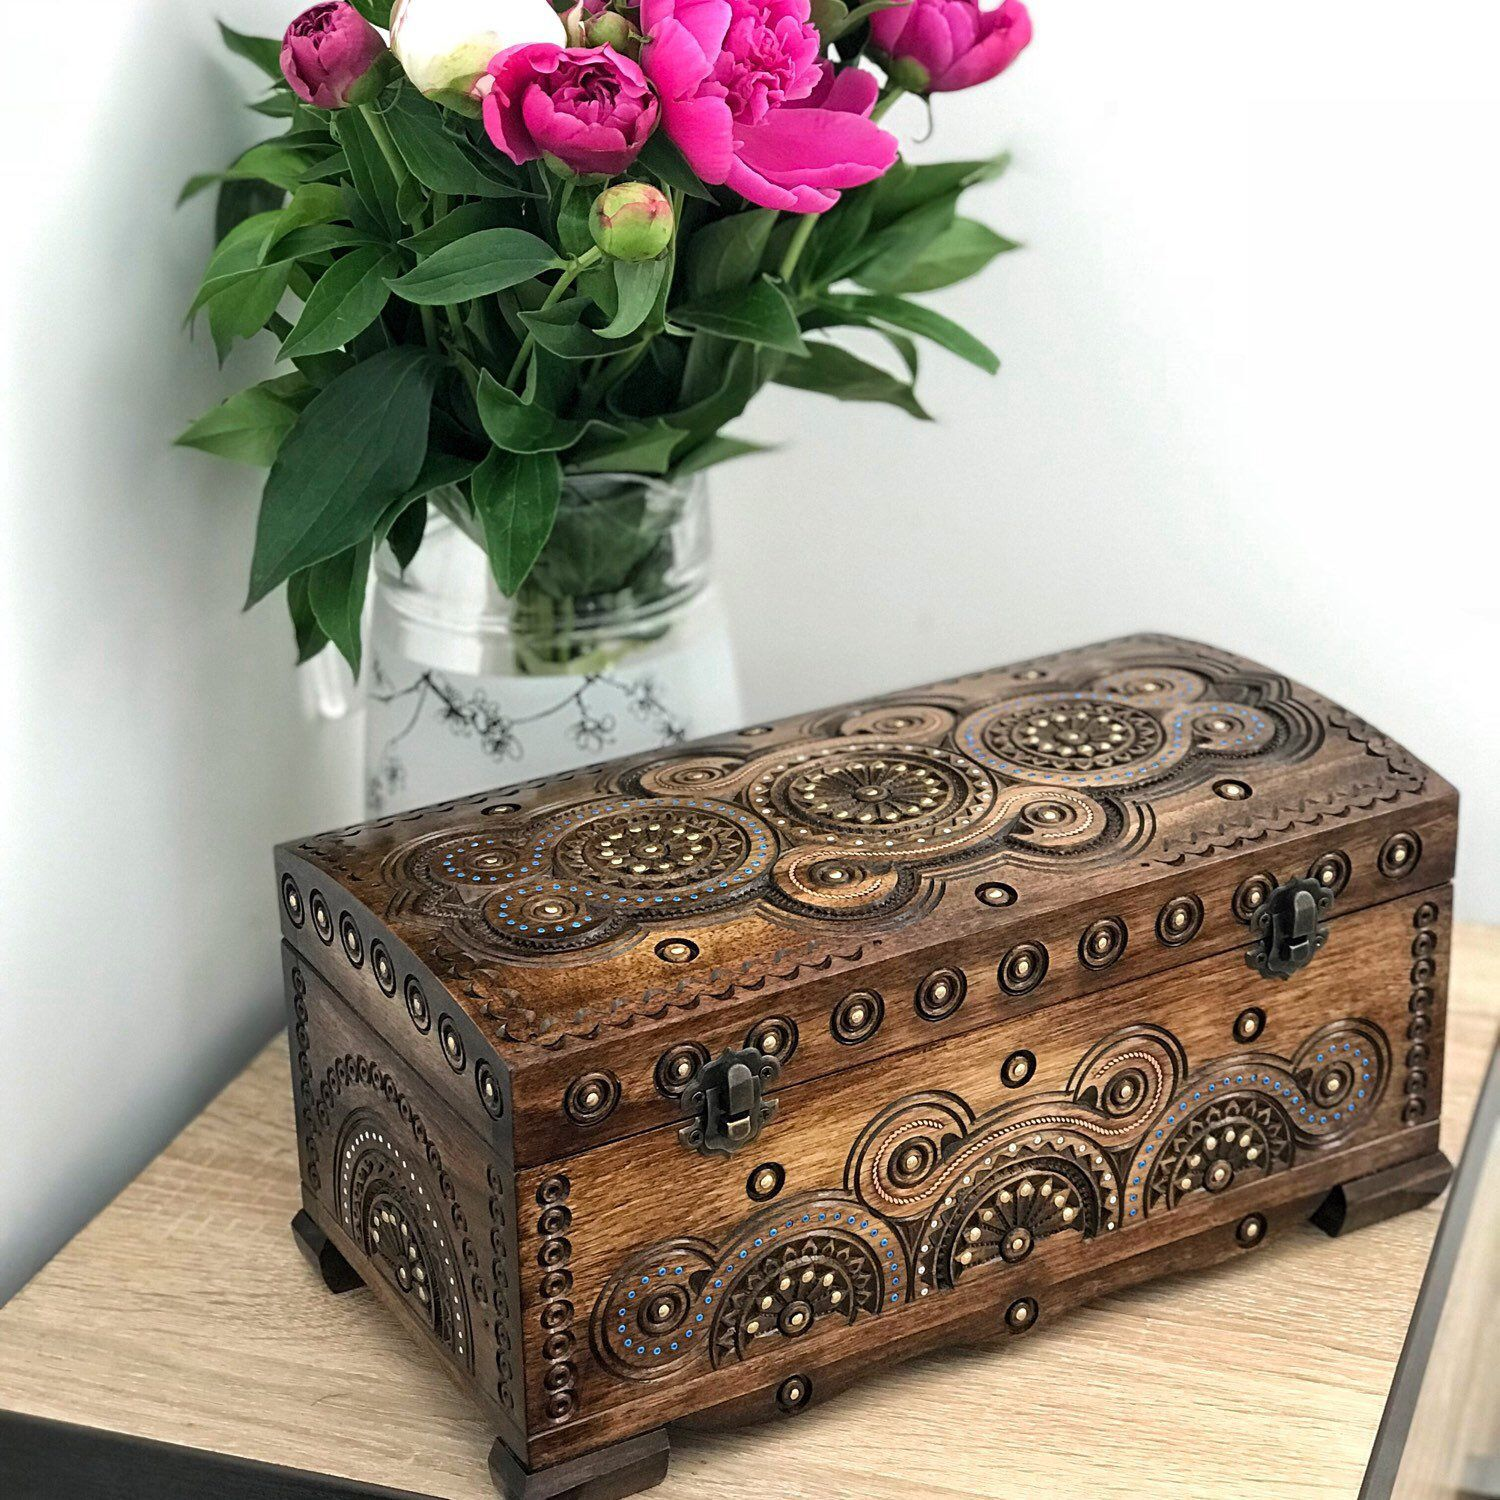 Jewelry box 5th anniversary gift Wooden gift Jewelry storage Wooden jewelry box Handmade wooden box Wood carving Gift for her Gift for wife